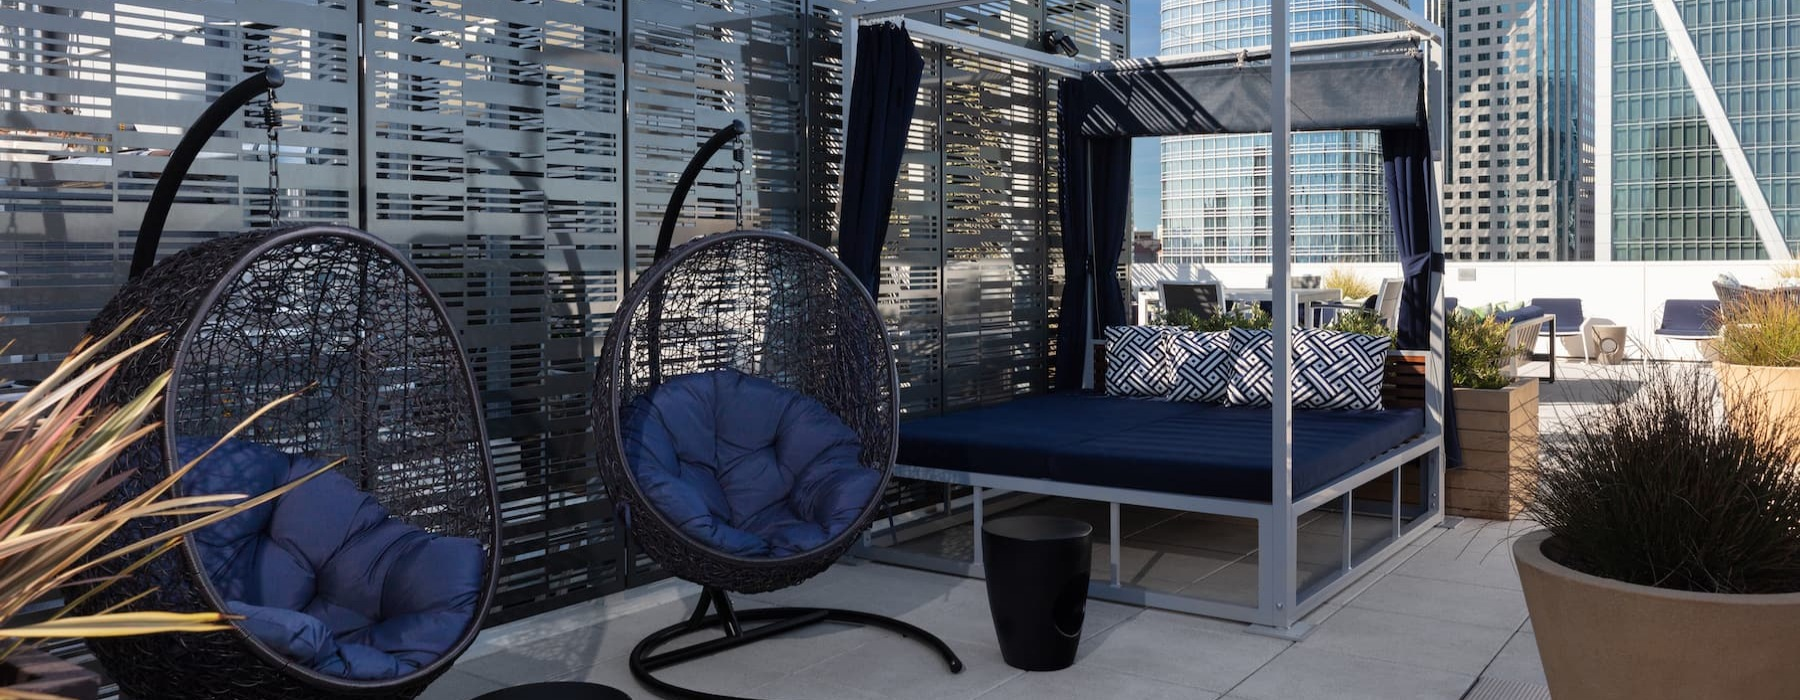 spacious rooftop lounge area with views of the city skyline and modern decor